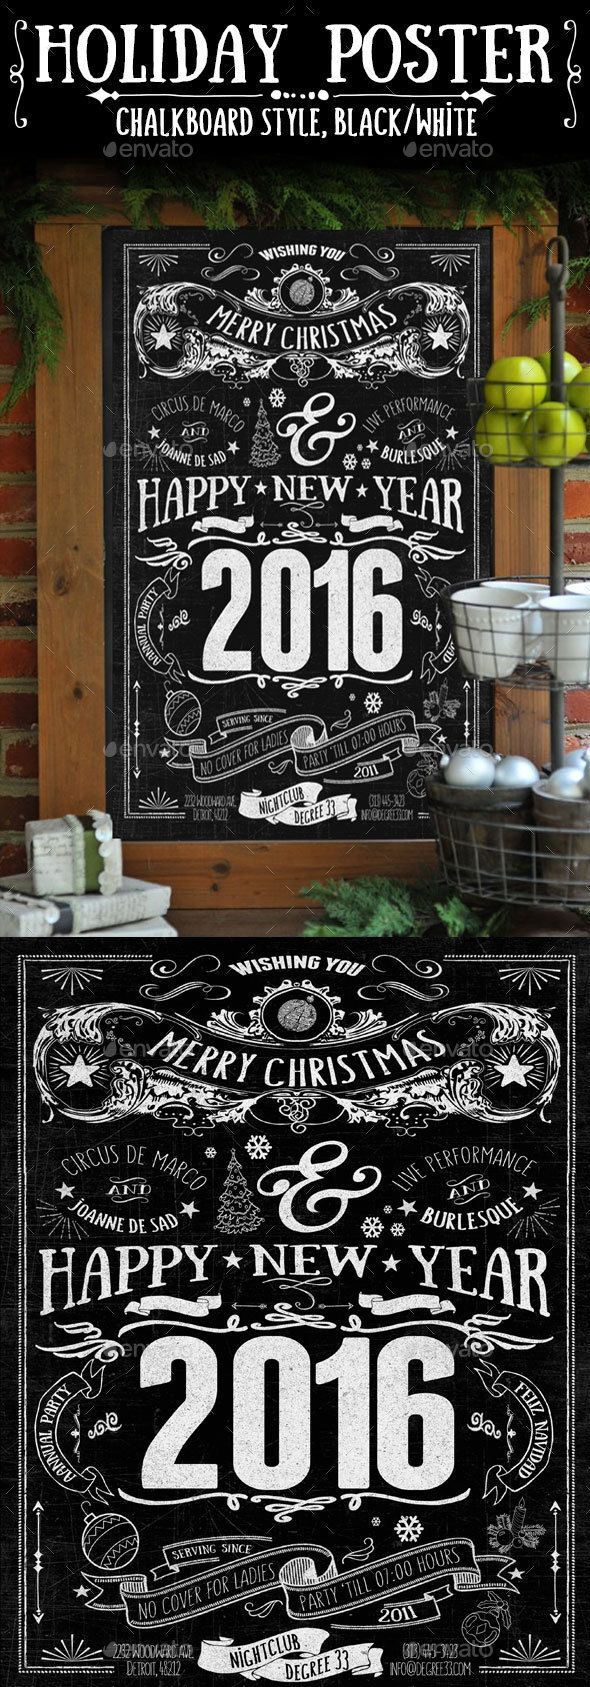 chalkboard style holiday poster holiday posters holiday and poster poster middot chalkboard style holiday poster template